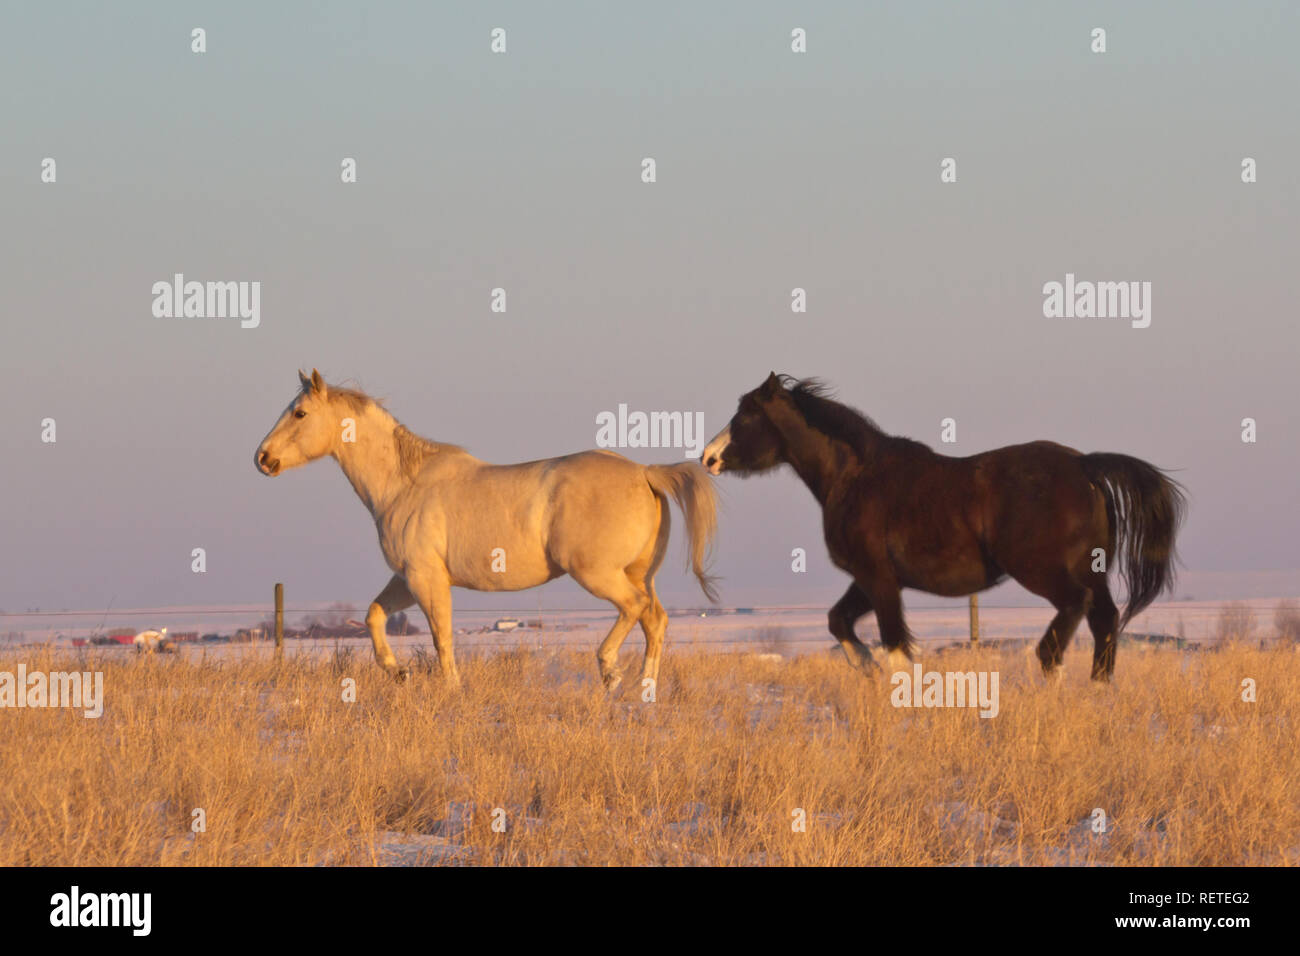 Side view as pair of beautiful, spirited horses run in pasture in late winter evening light, with setting sun casting a warm glow. Room for text. Stock Photo